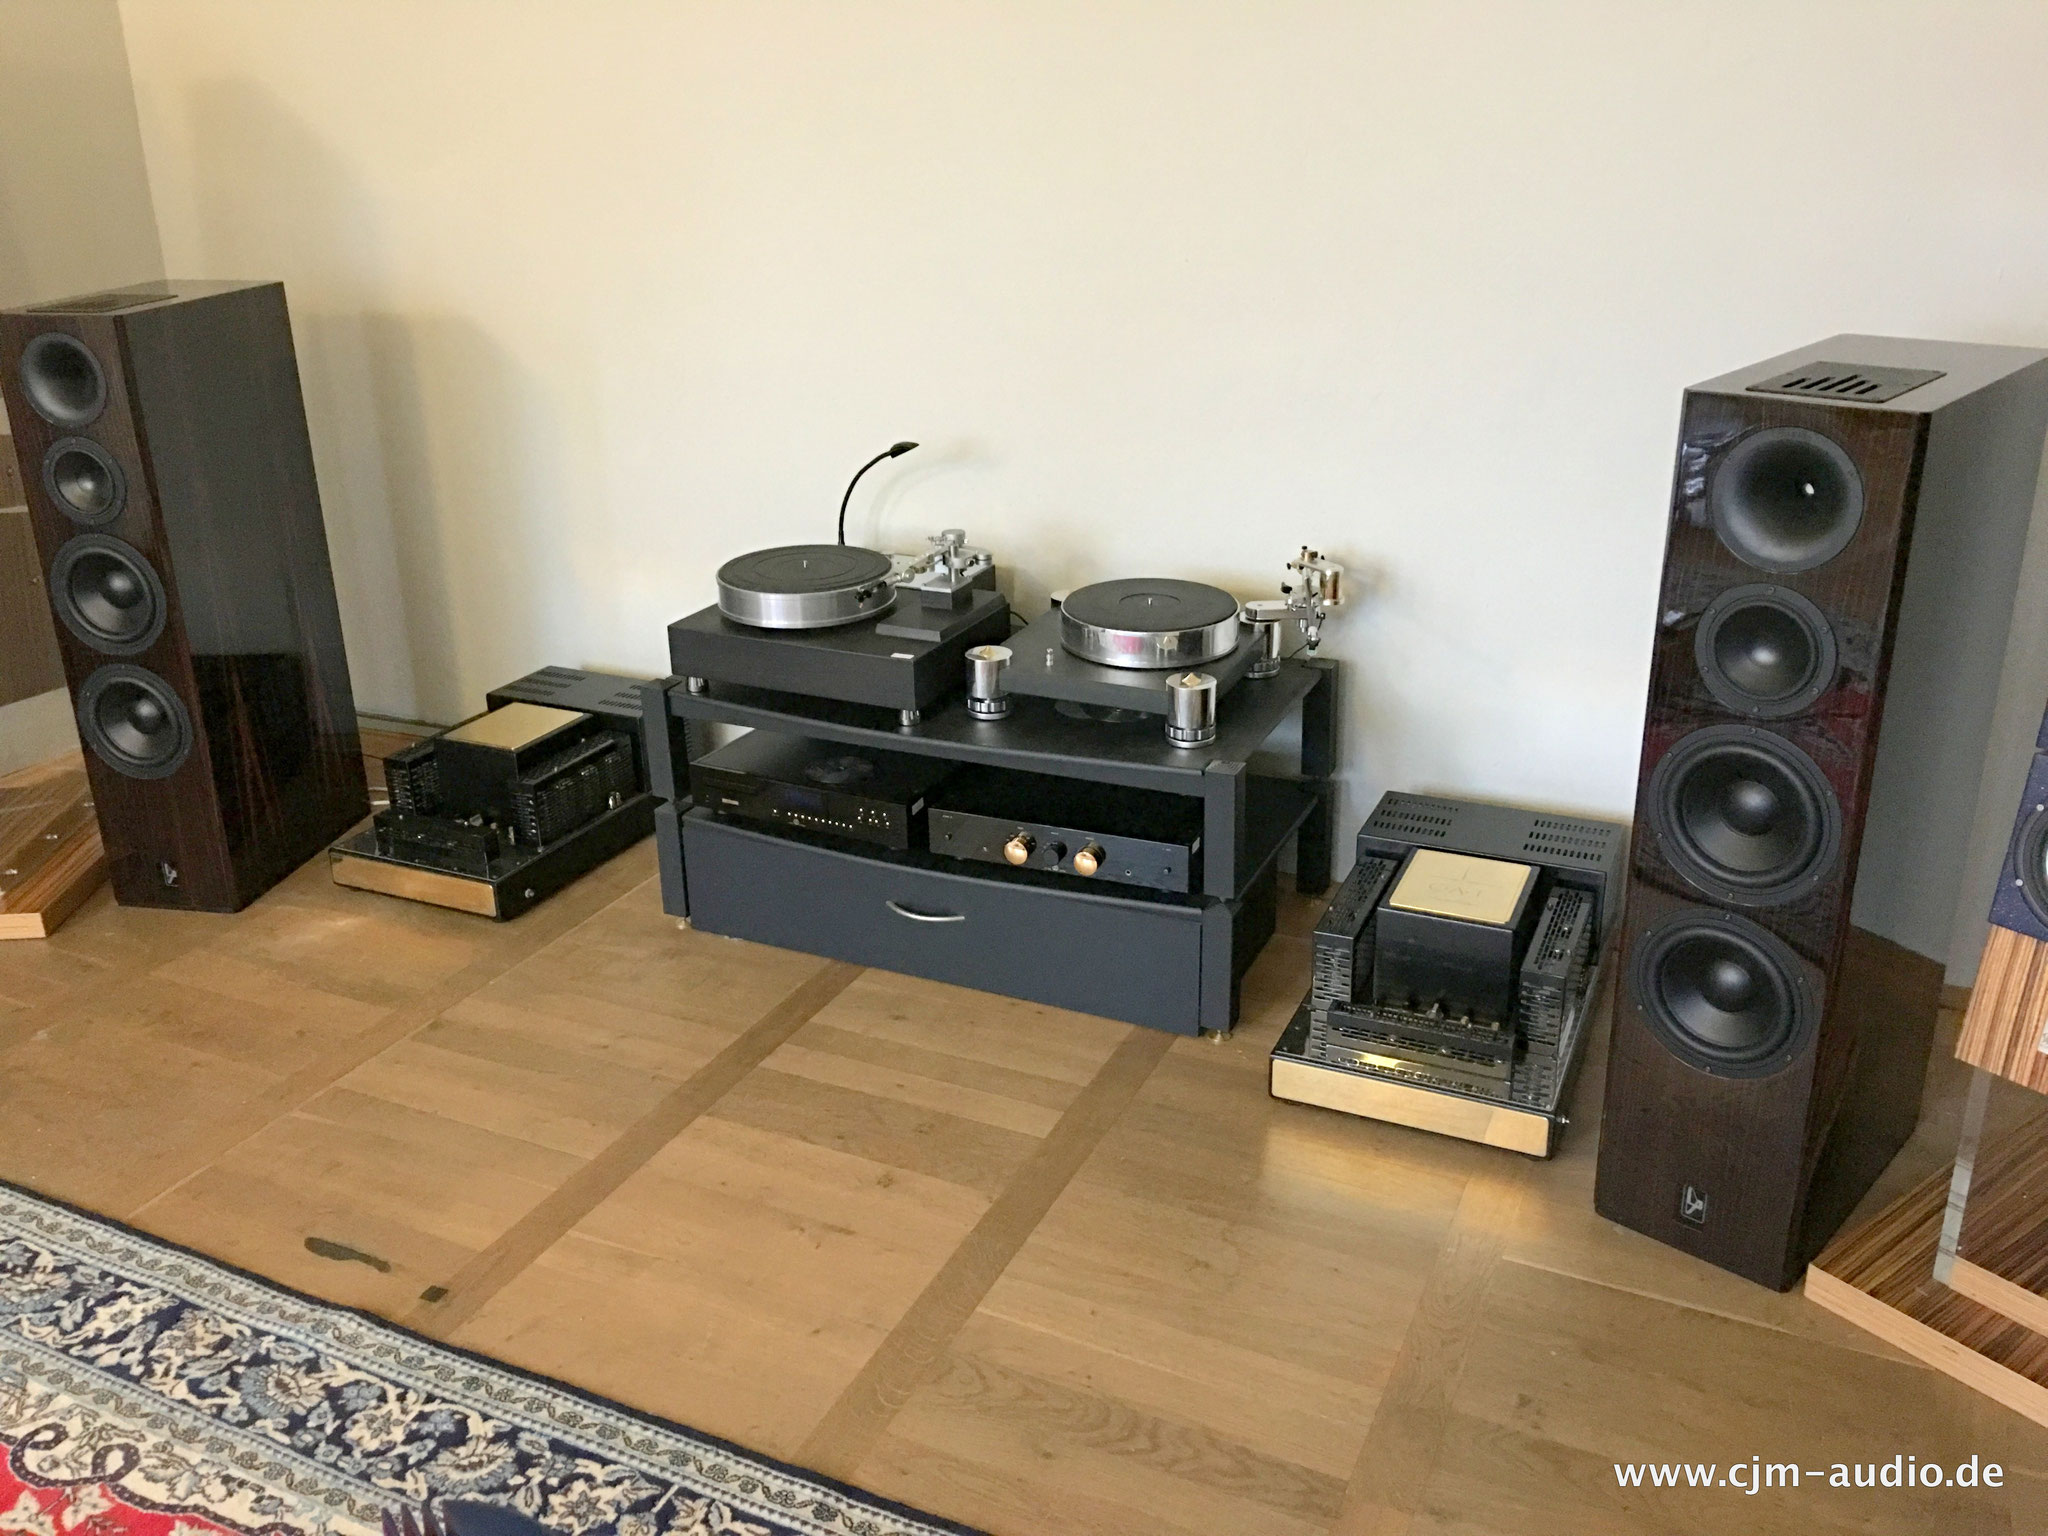 Krell Mra Mono Amps Hifi T Amazoncom Pyle Home Ptau45 Mini 2x120 Watt Max Stereo Power Cat Convergent Audio Technology Jl1 Limited Edition Sold Cjm High End Audiomarkt Fr Gebrauchtgerte